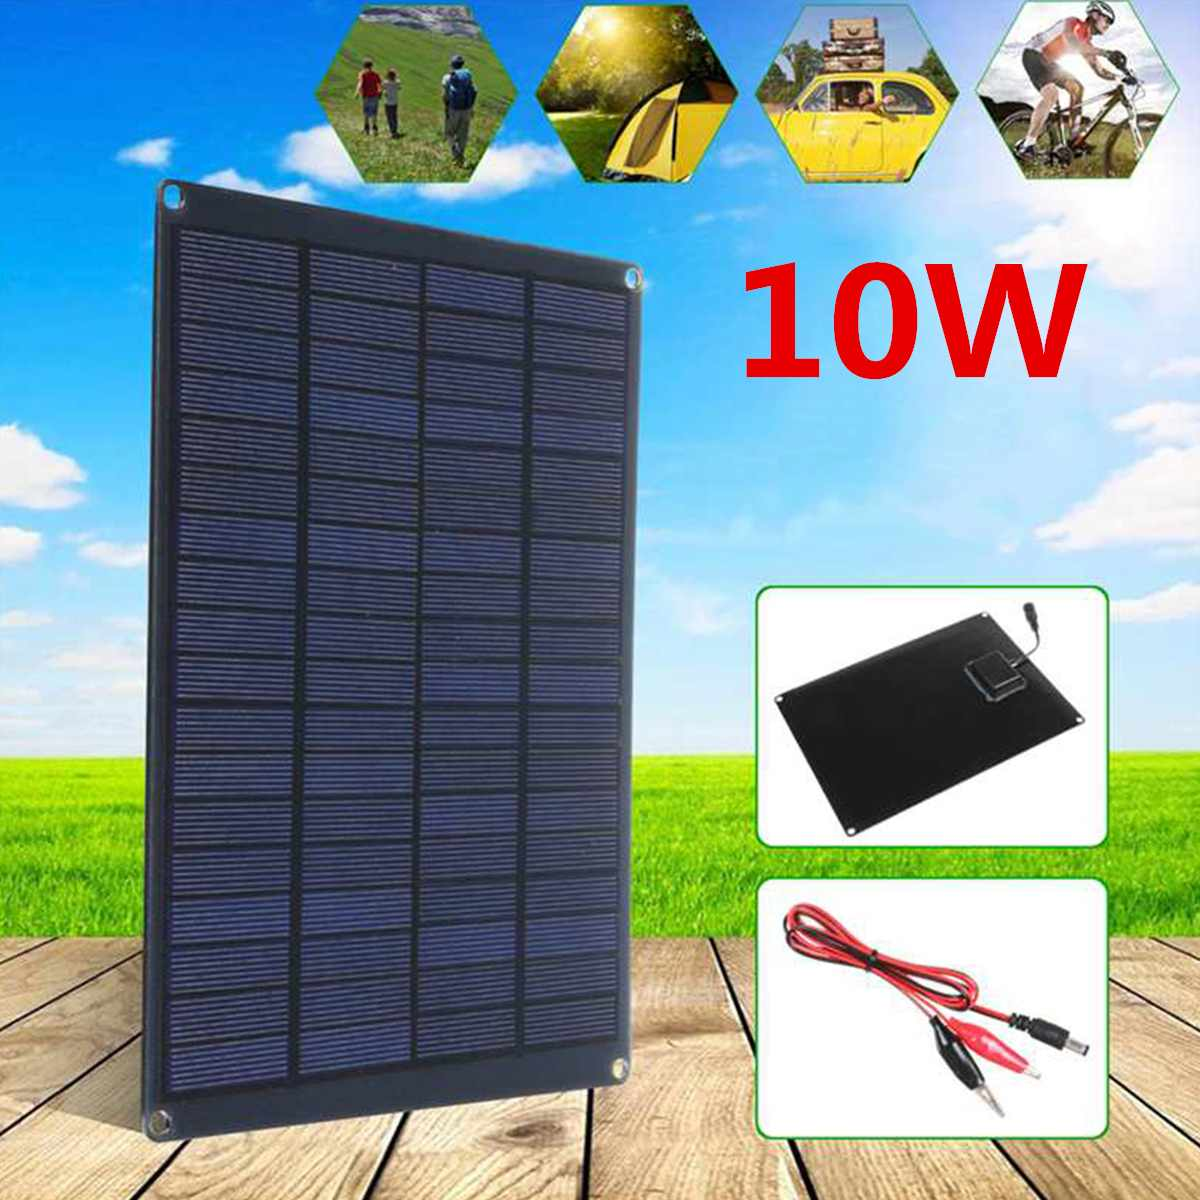 10W 12V Solar Panel Monocrystalline Silicon 5A 18V Waterproof High Efficiency Solar Cells for Outdoor Camping Hiking Charger image